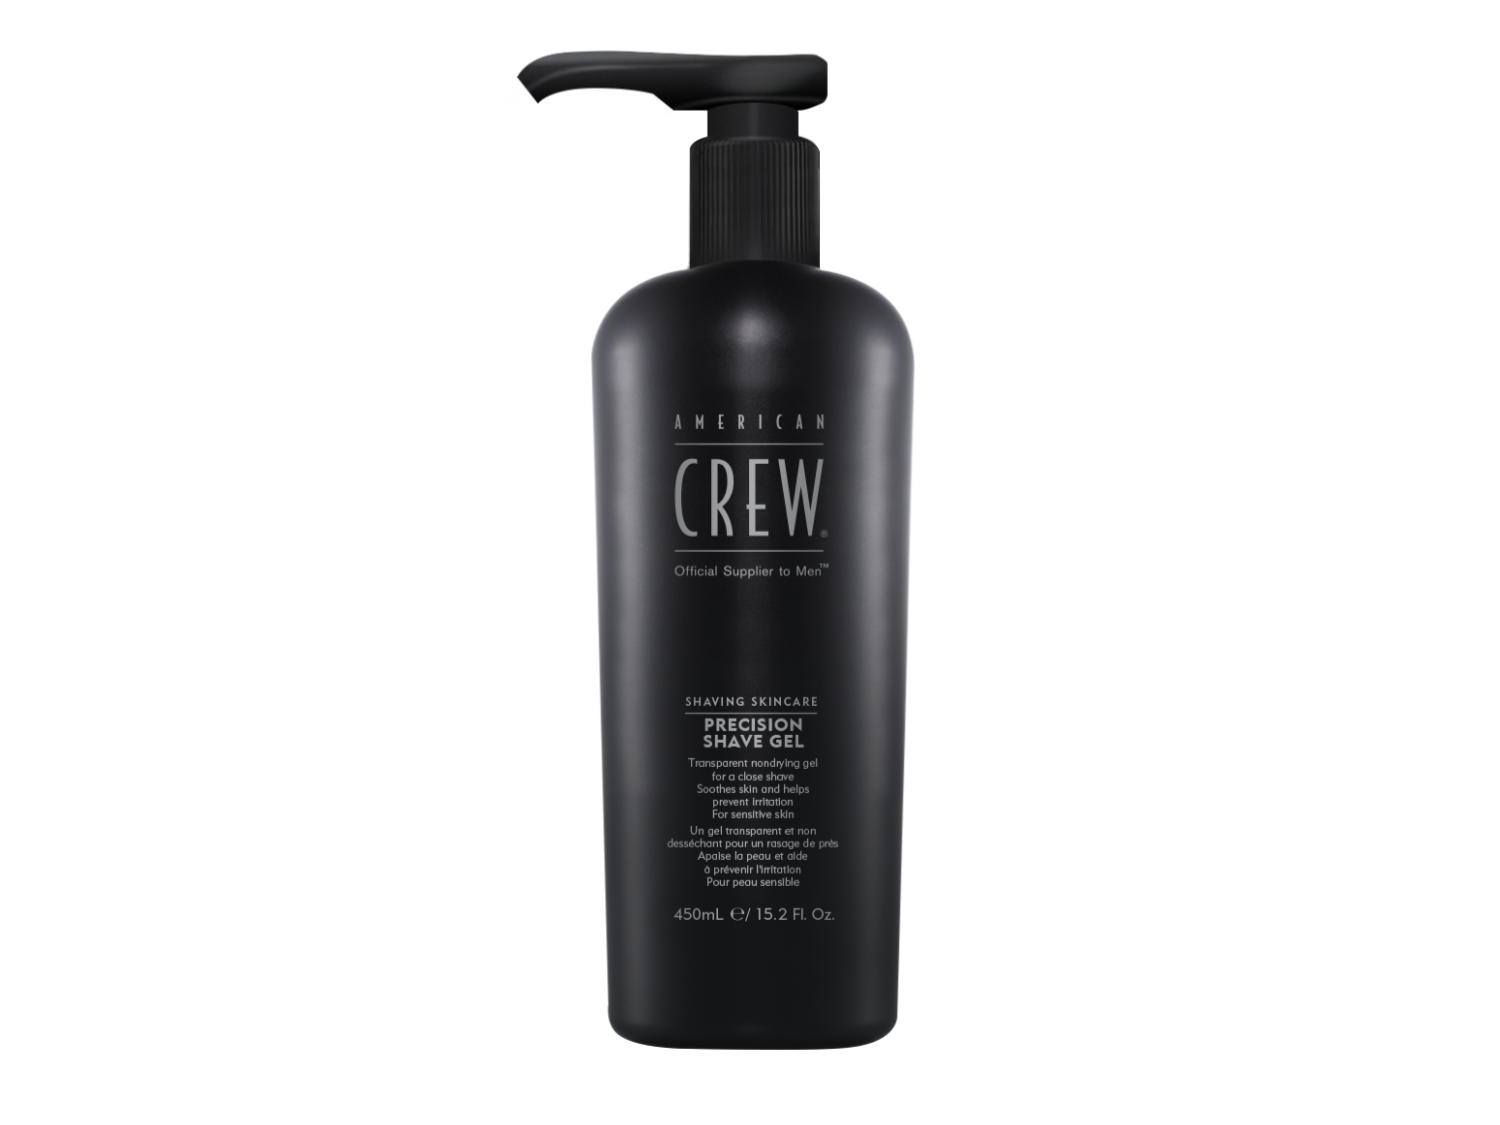 Arma Beauty - American Crew - Precision Shave Gel